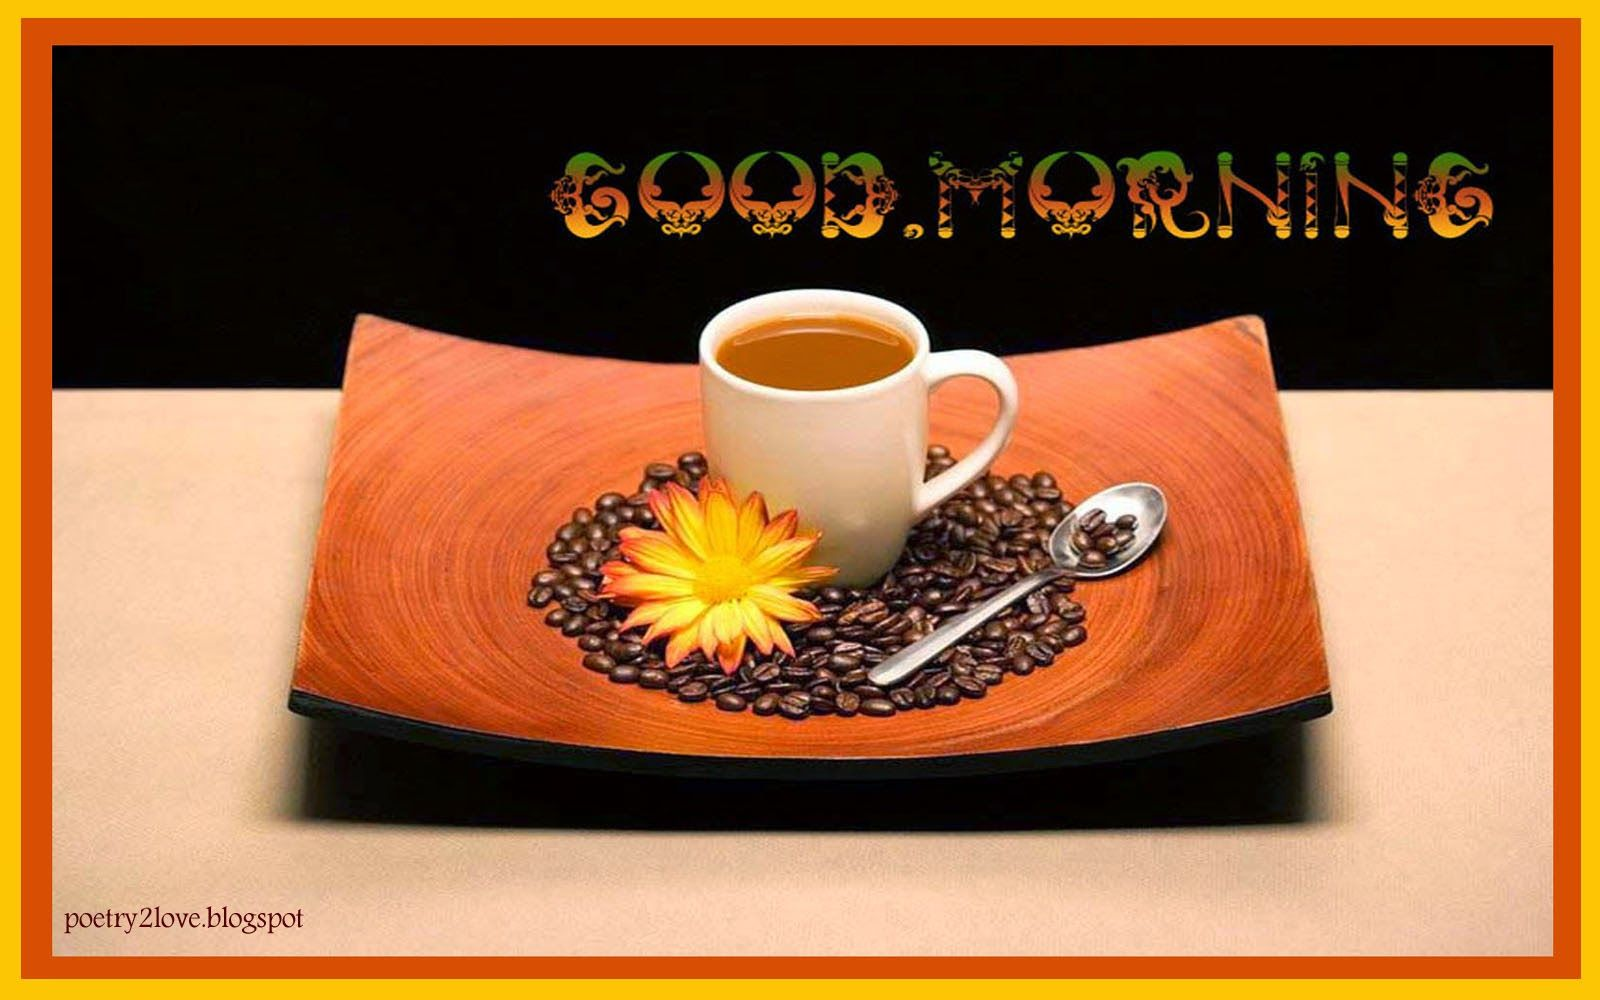 Good Morning Love Sayari Wallpaper : Good Morning Urdu Romantic And Lovely Sms Hd Wallpapers Free Download - Poetry Sms christmas ...